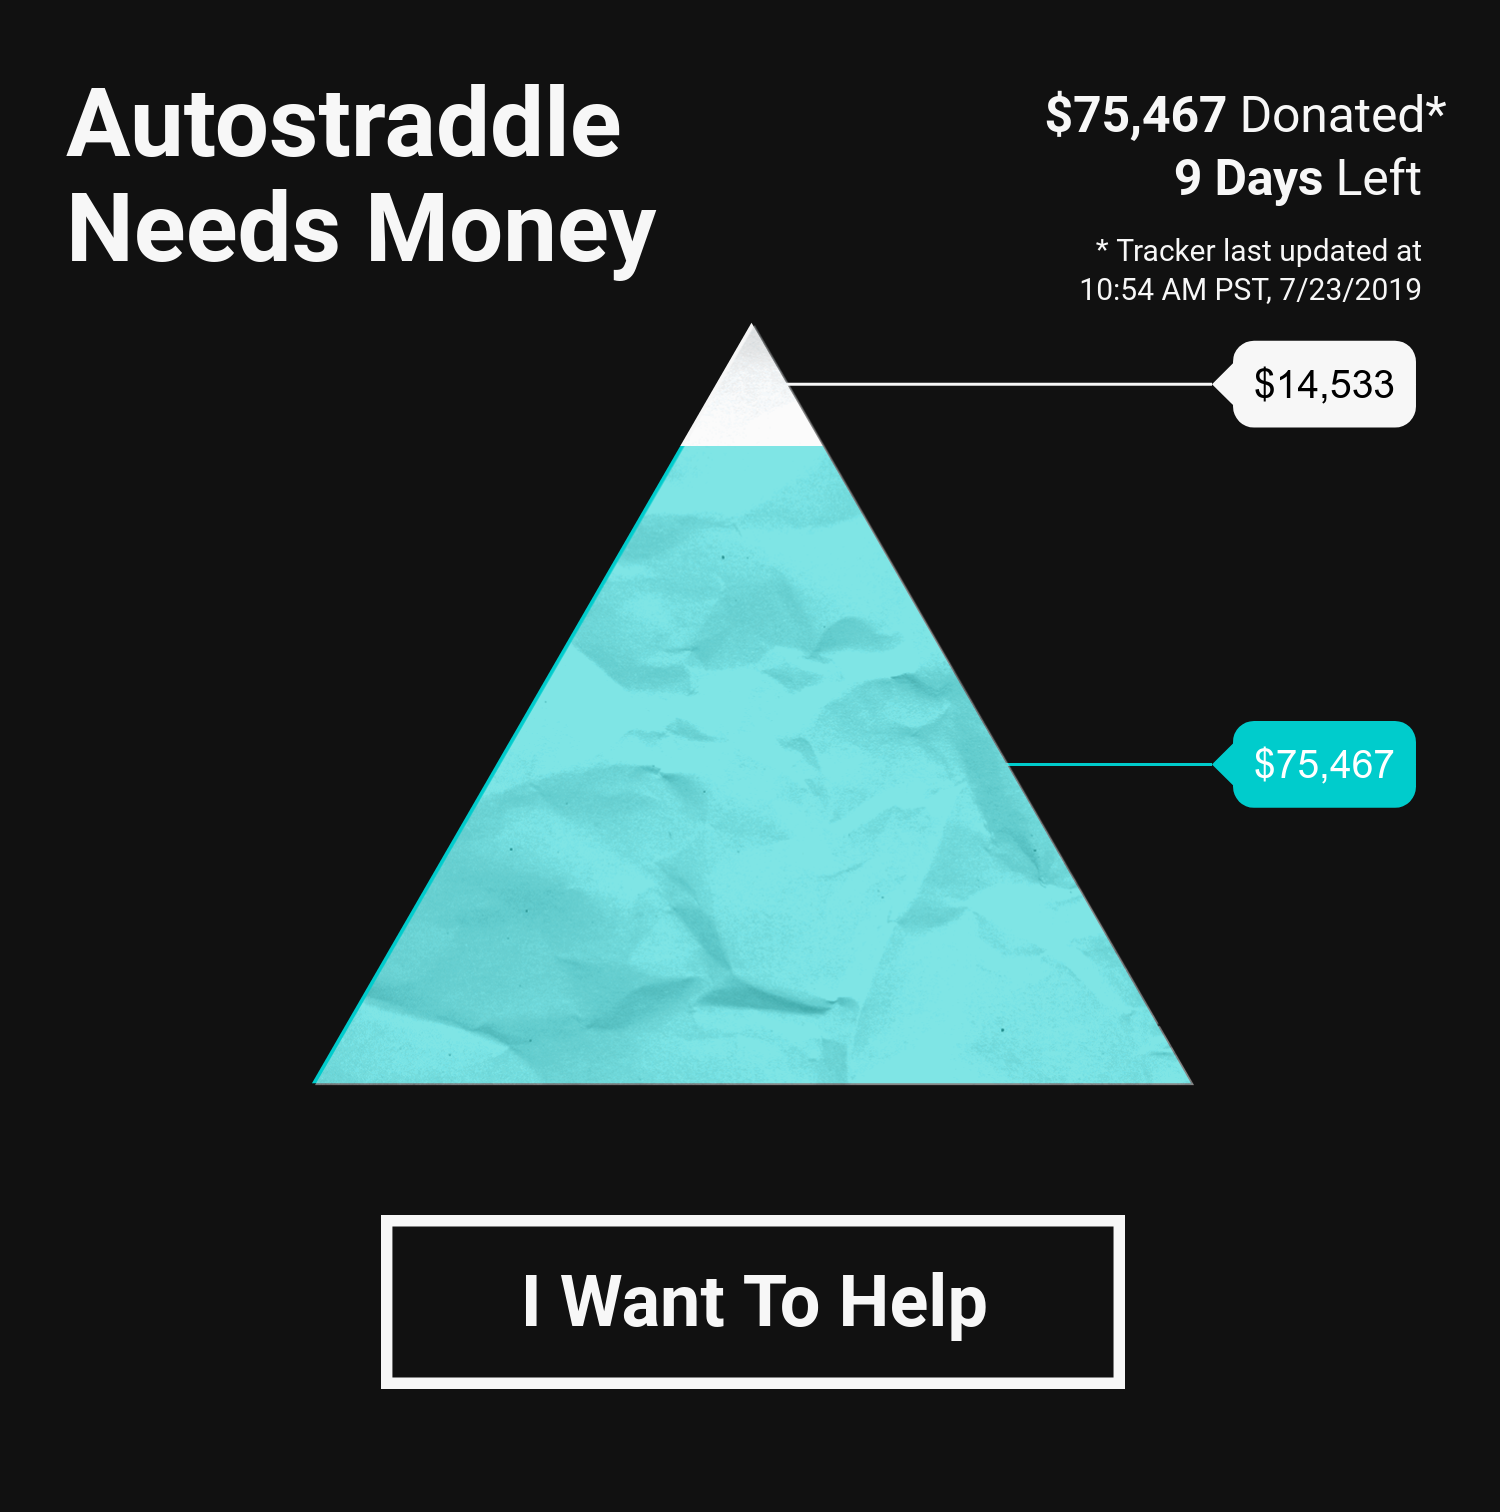 Autostraddle Needs Money / [visual] Fundraising Tracker / $75,467 Donated / Last Updated: 7.23 at 10:54 am PST / [button] I Want To Help